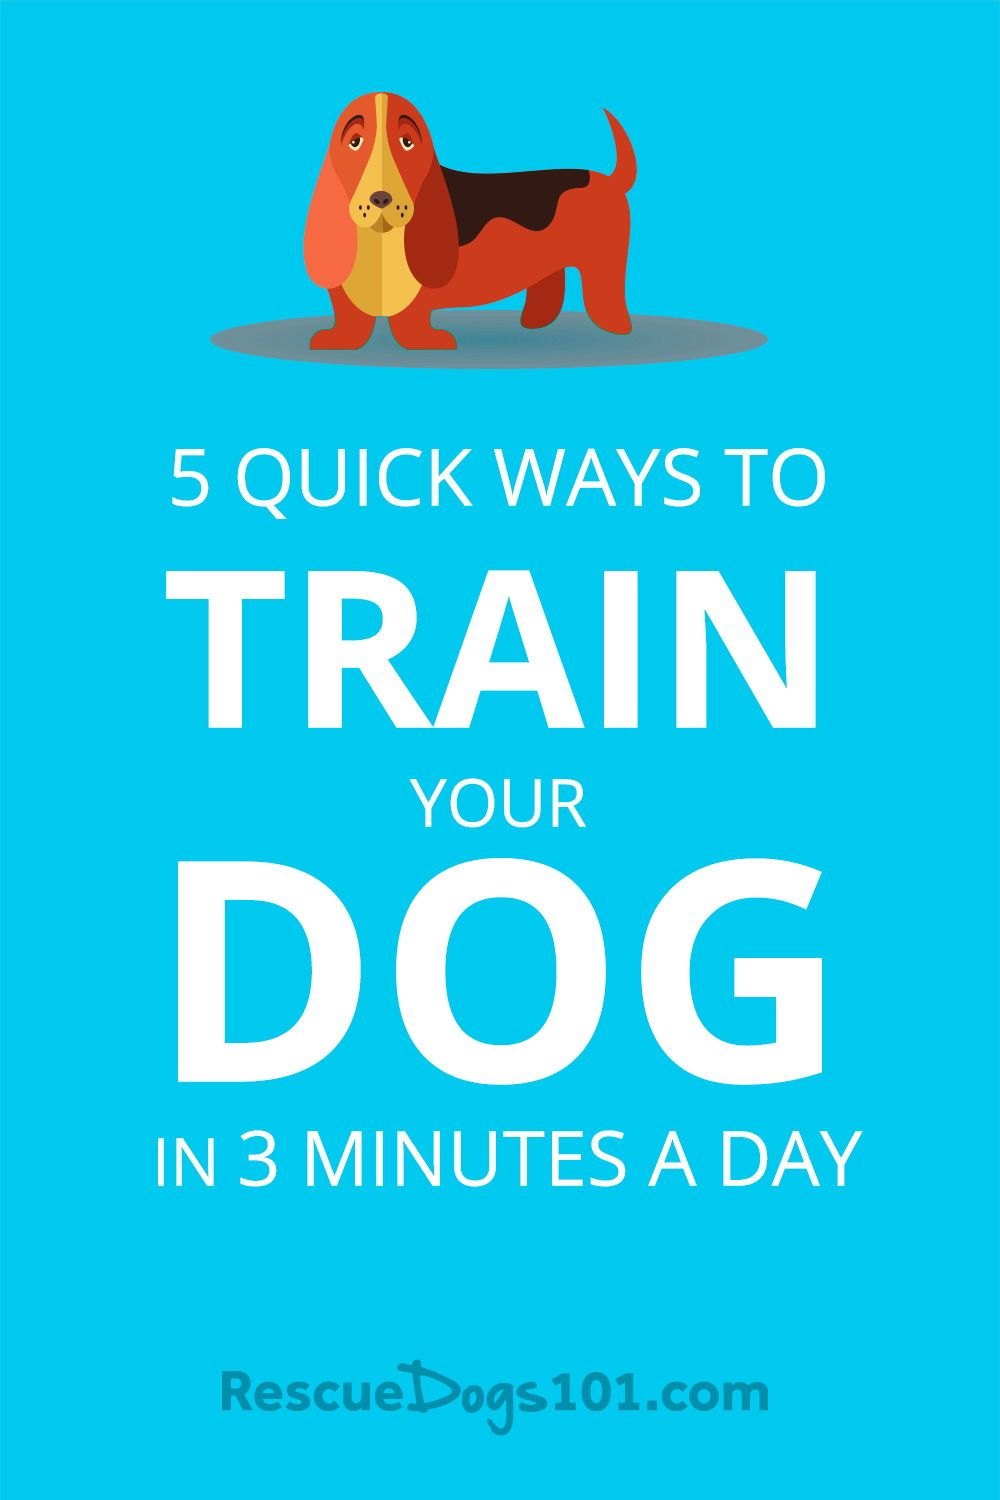 5 Quick Ways To Train Your Dog In 3 Minutes A Day